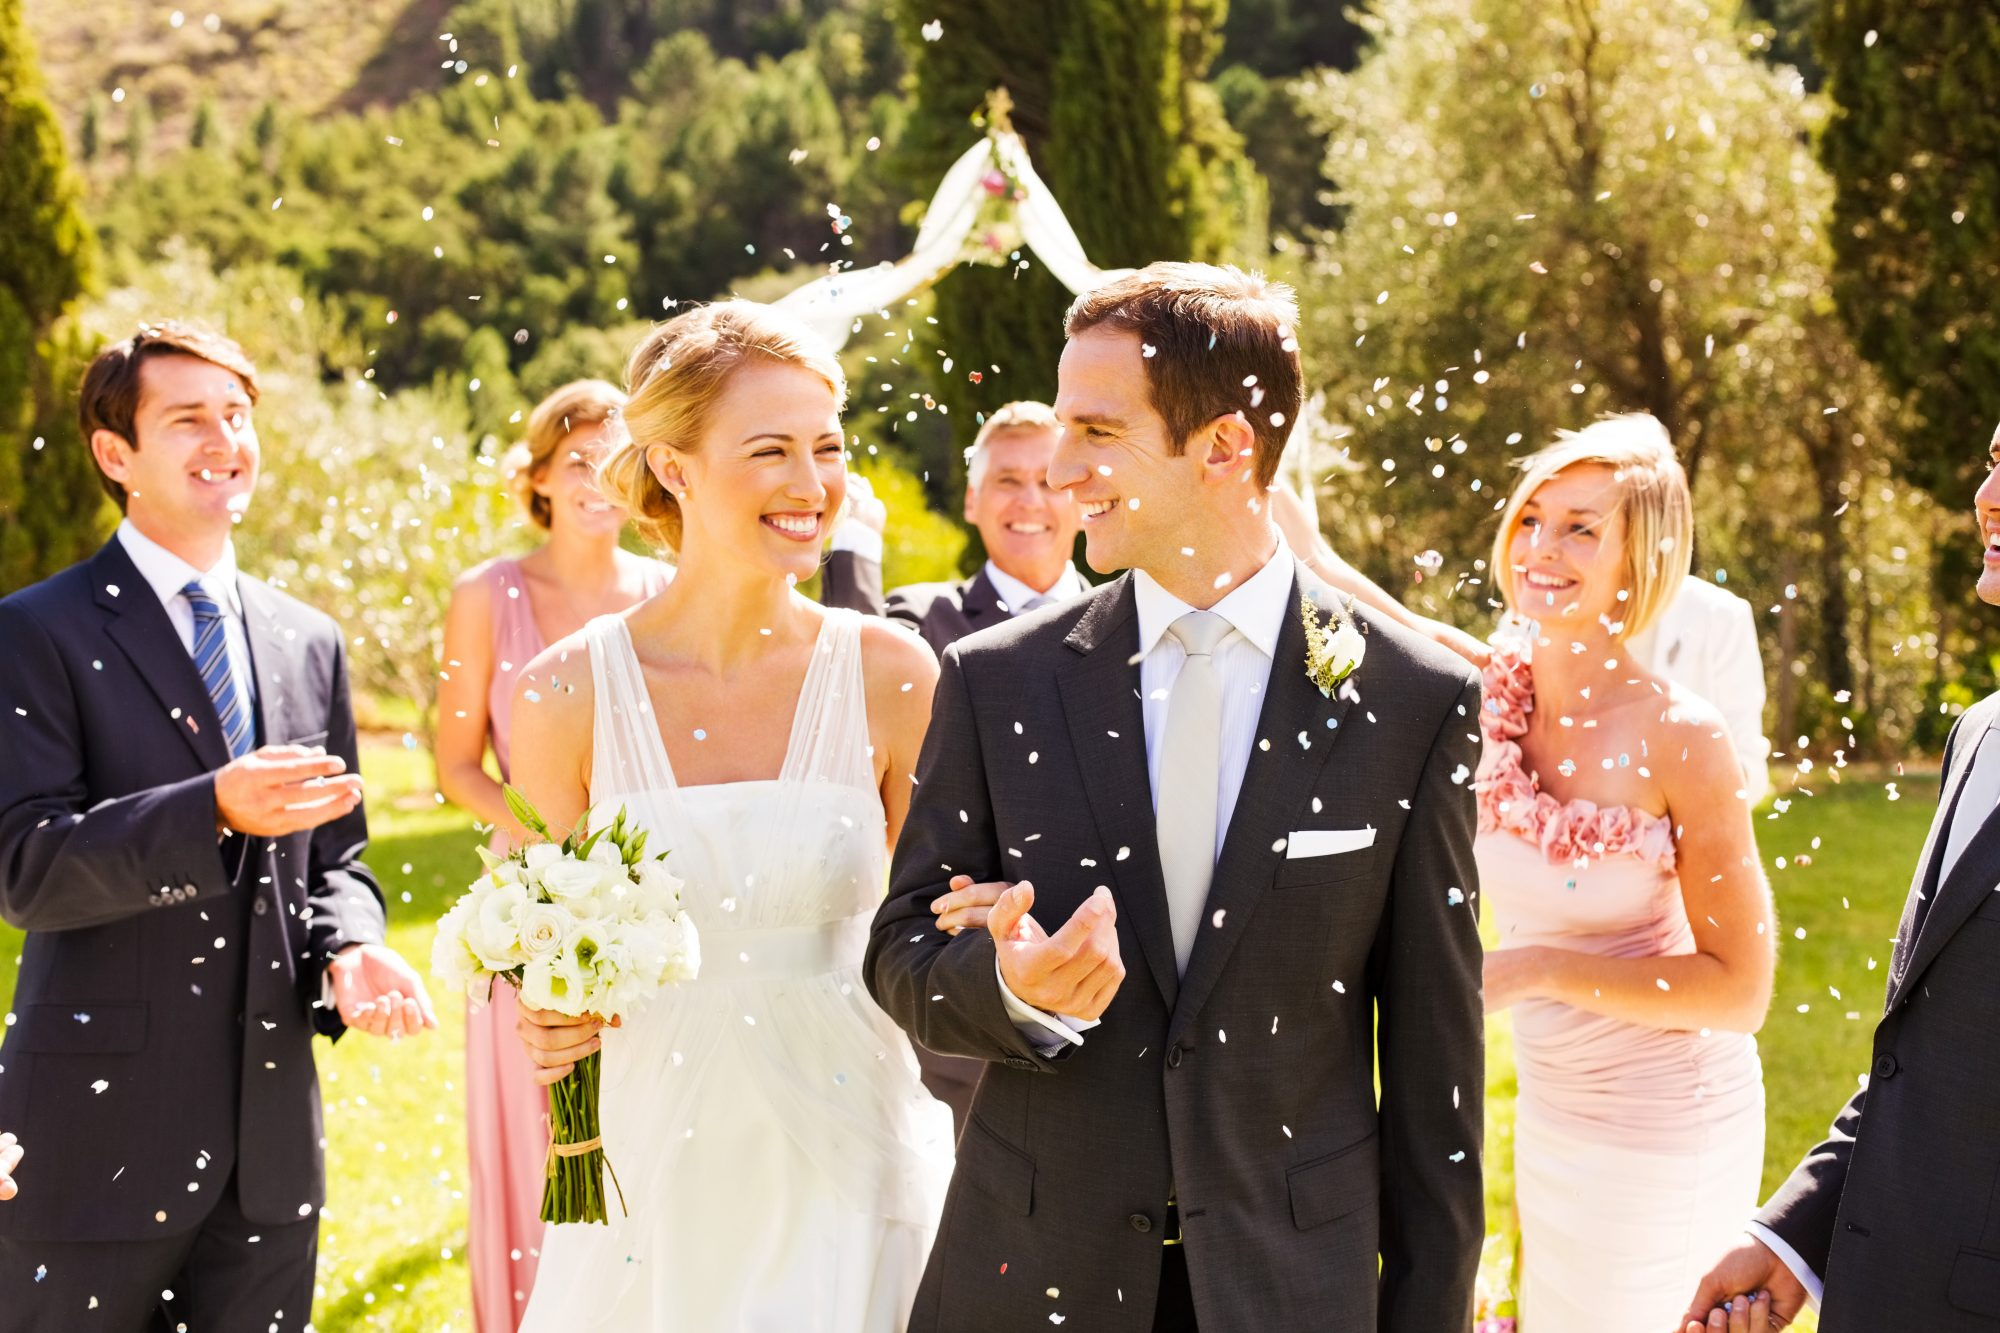 The More the Merrier: Does a Big Wedding Lead to a Better Marriage?